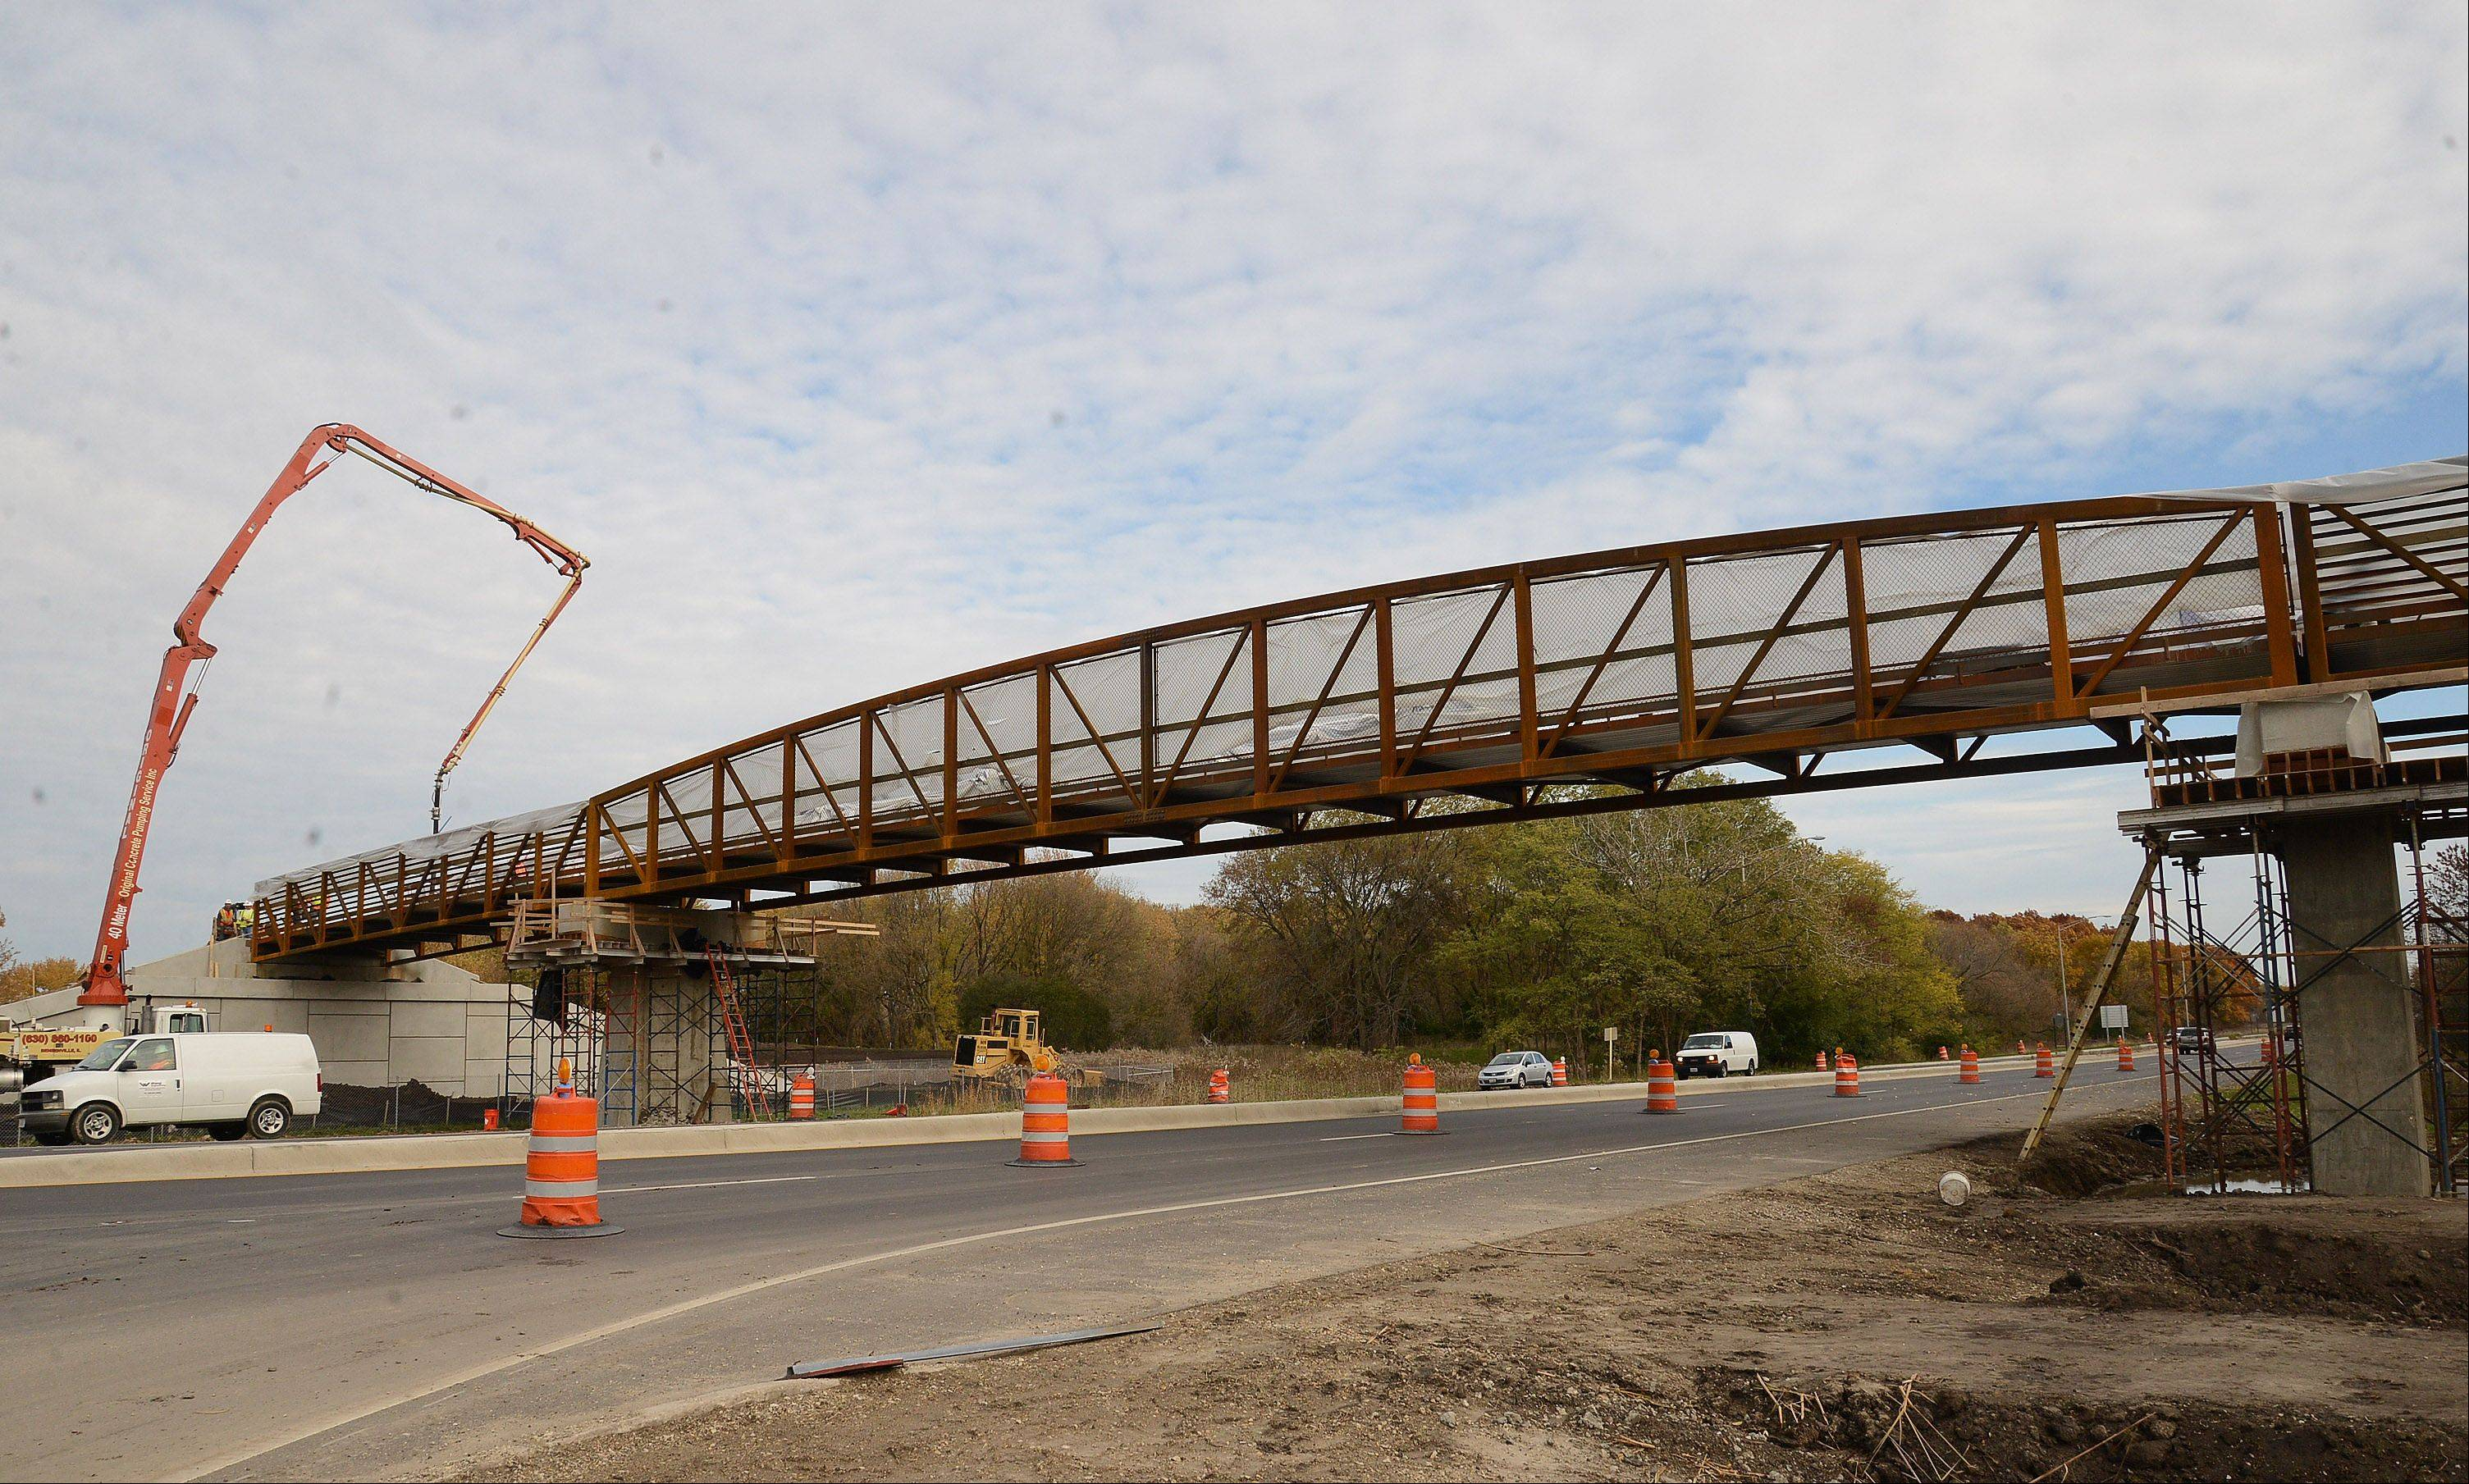 Construction of a long-awaited bridge crossing Higgins Road at Busse Woods is progressing faster than expected and could be complete by the end of the year. Officials say the bridge will provide a safe crossing point for bicyclists and pedestrians.